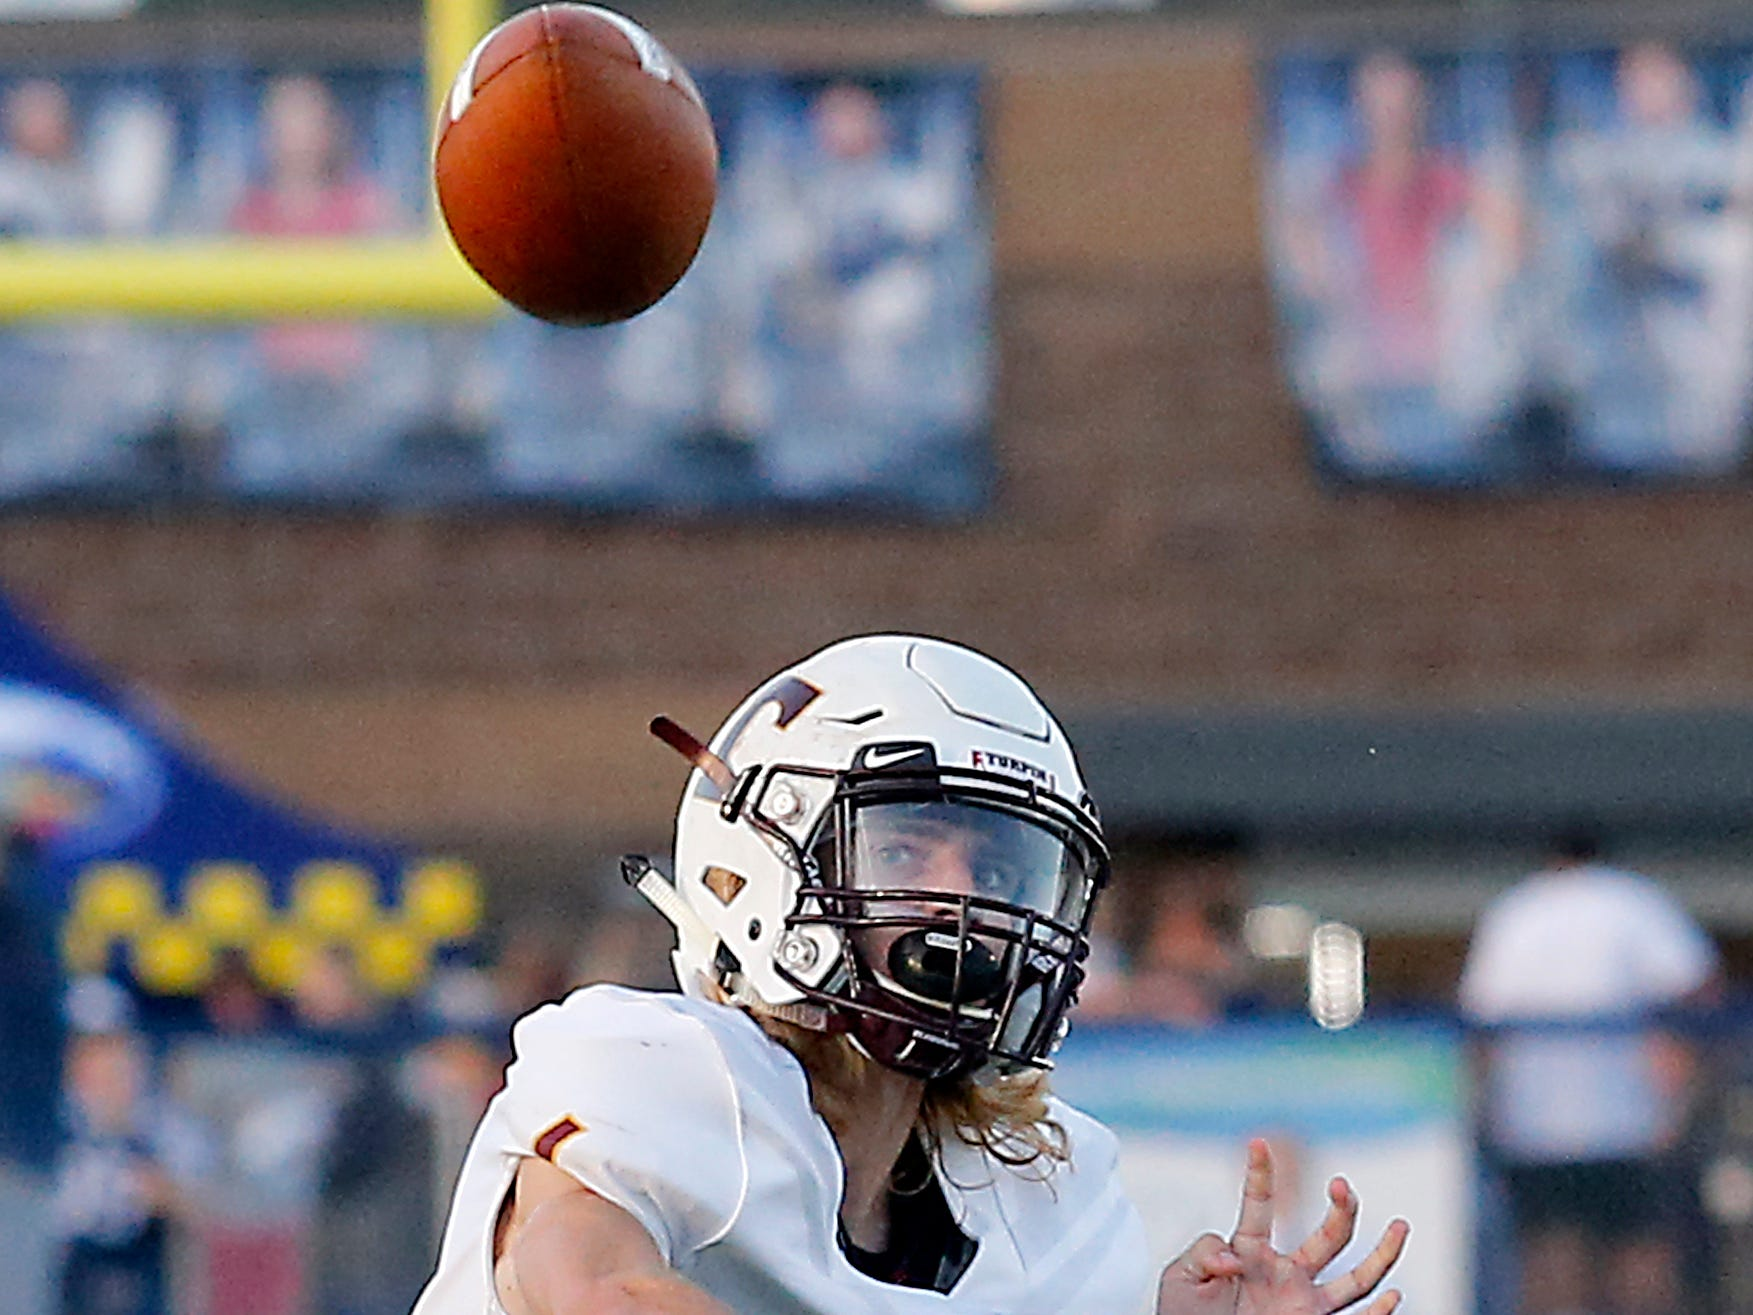 Turpin quarterback Justin Silverstein fires a pass against West Clermont during their 2018 Skyline Chili Crosstown Showdown at West Clermont Friday, Sept. 14, 2018.